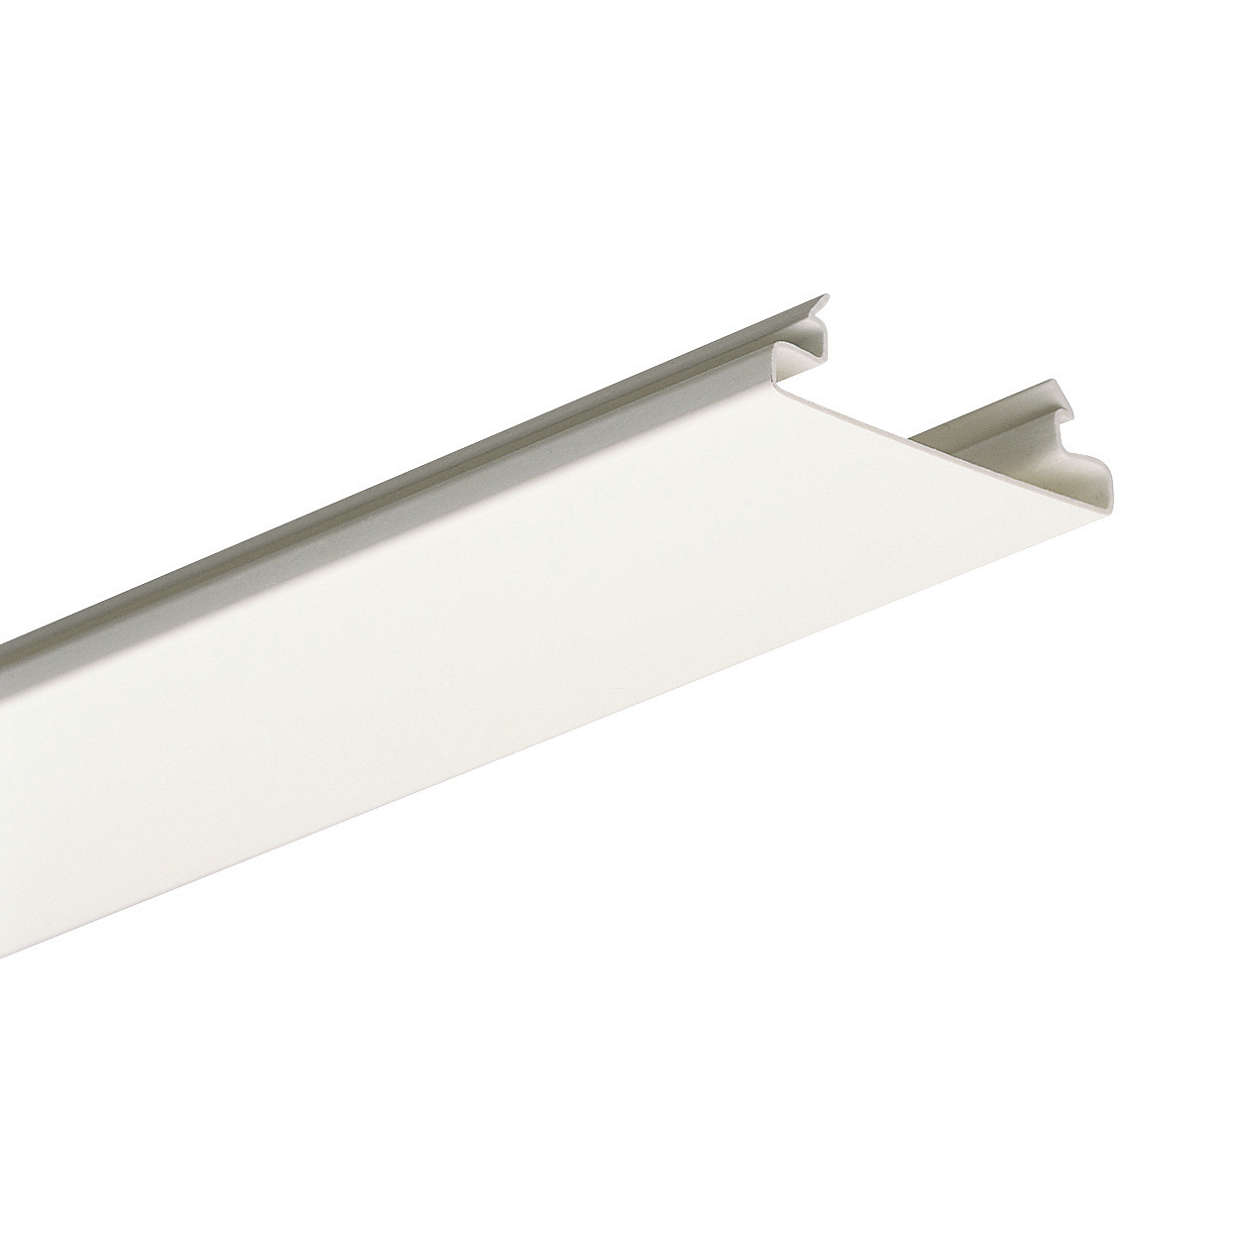 4MX056 TL-D extended trunking sections